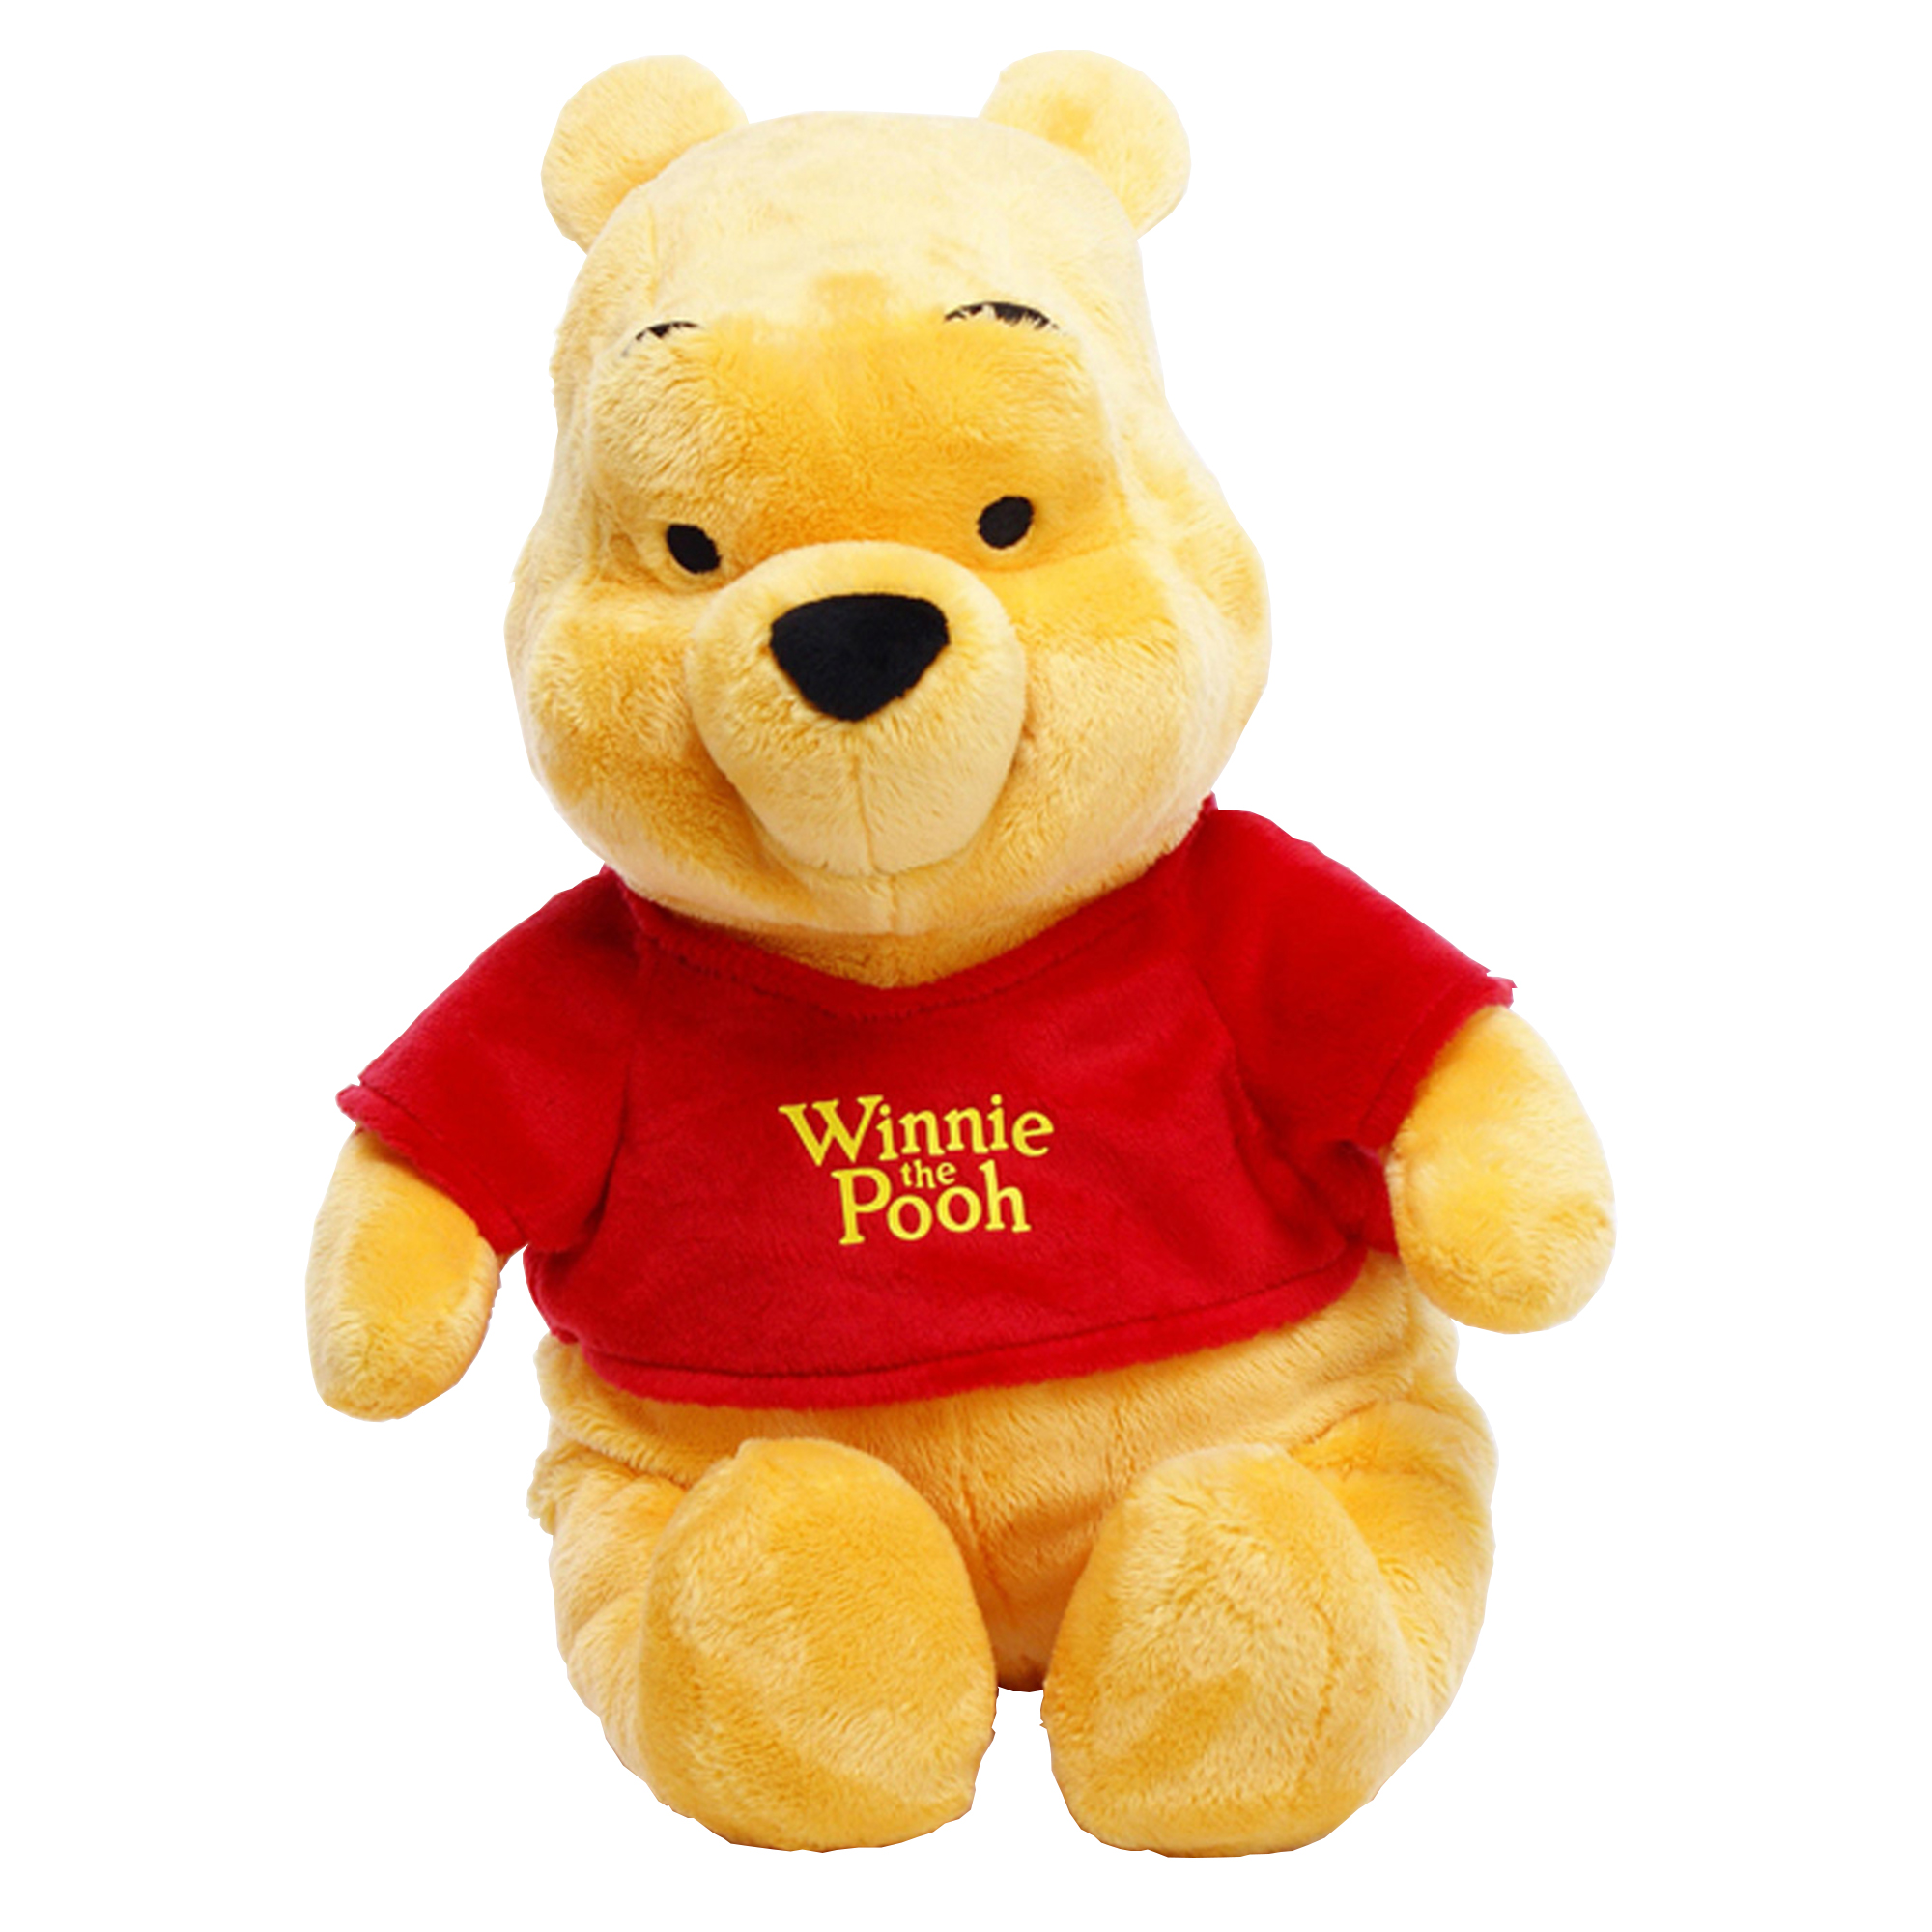 Winnie The Pooh Toys : Winnie the pooh babies quot r us piece